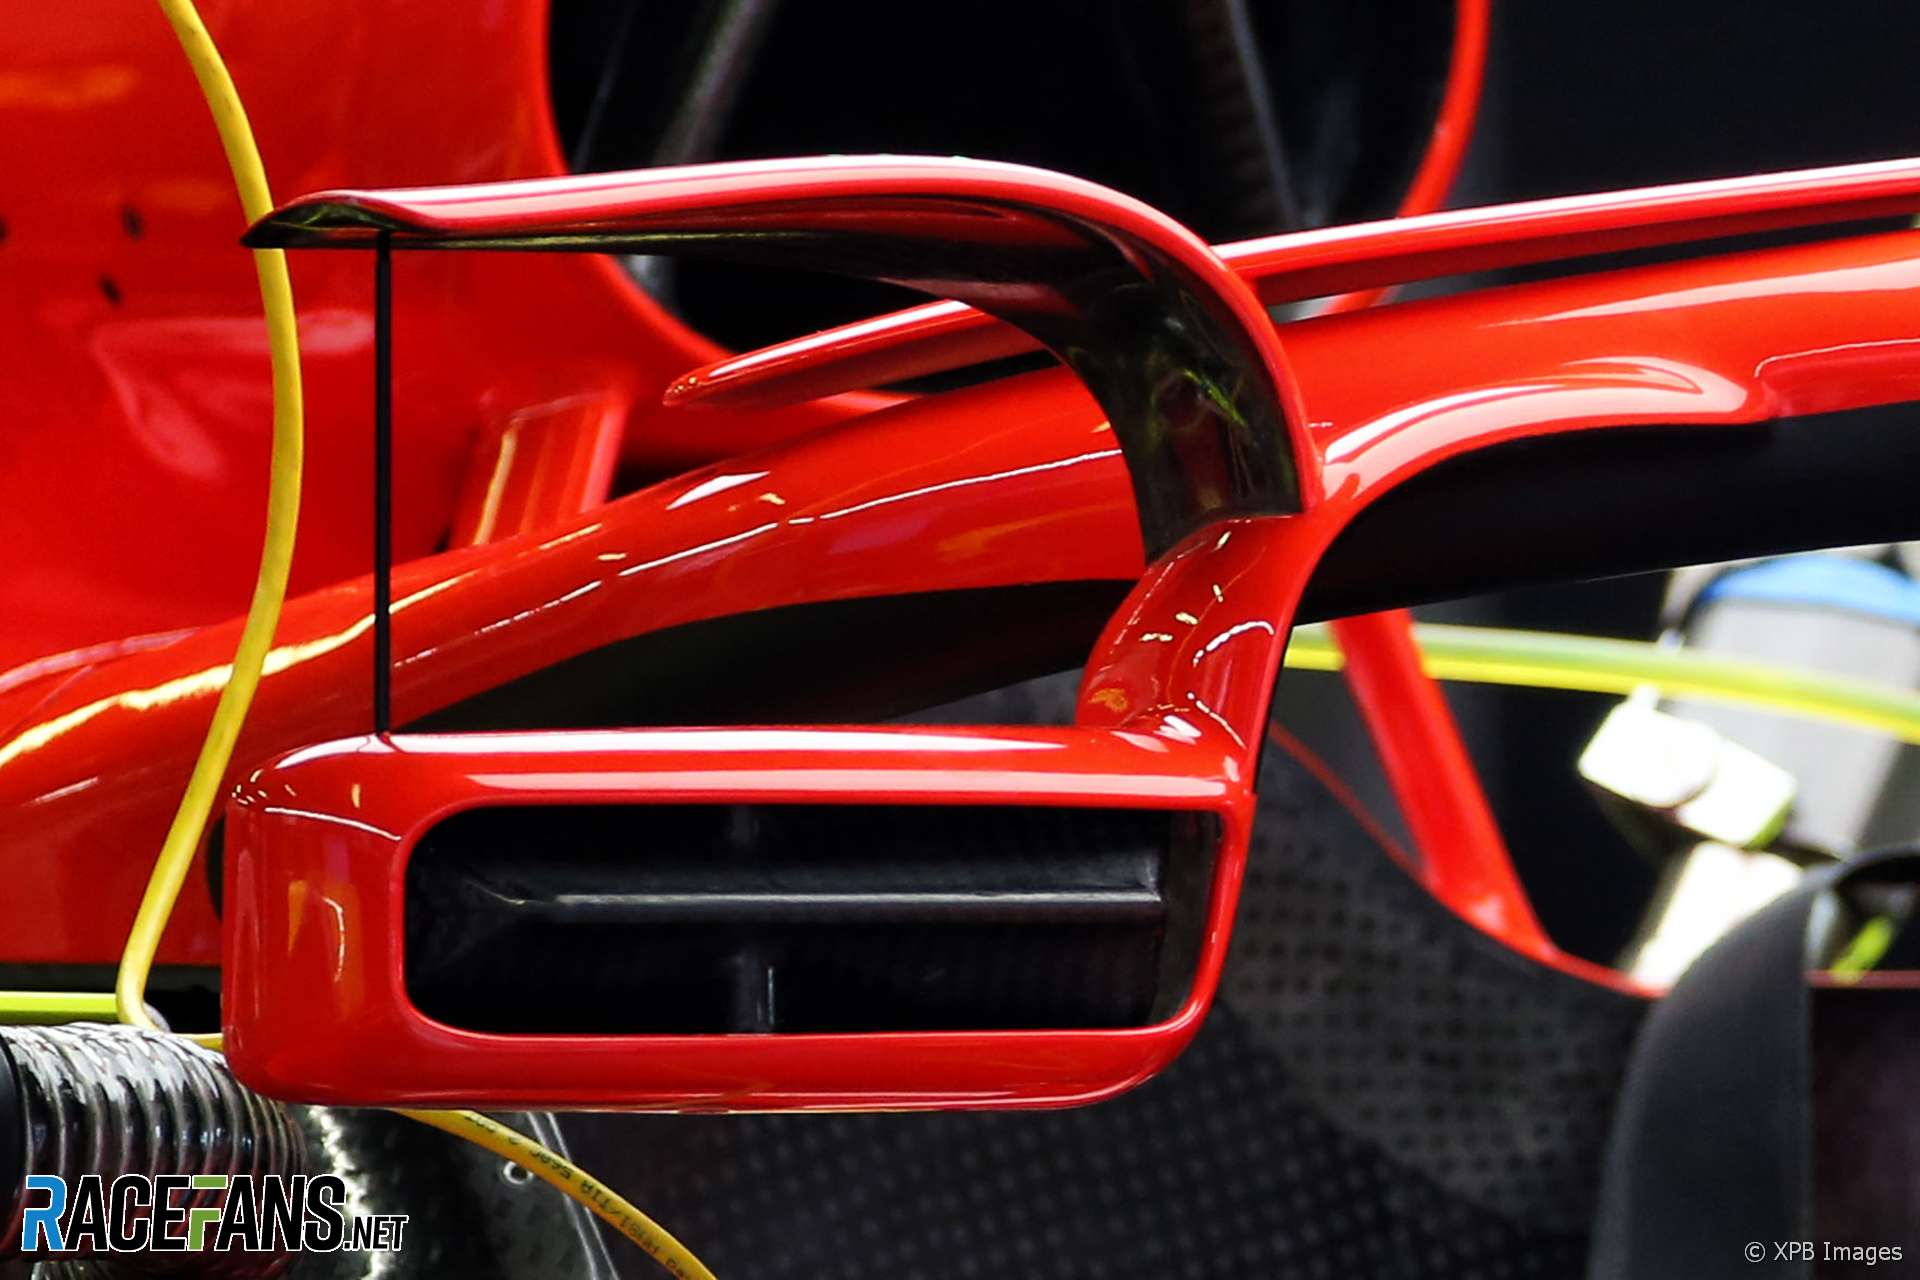 FIA explains why Ferrari's Halo mirrors will be banned ...